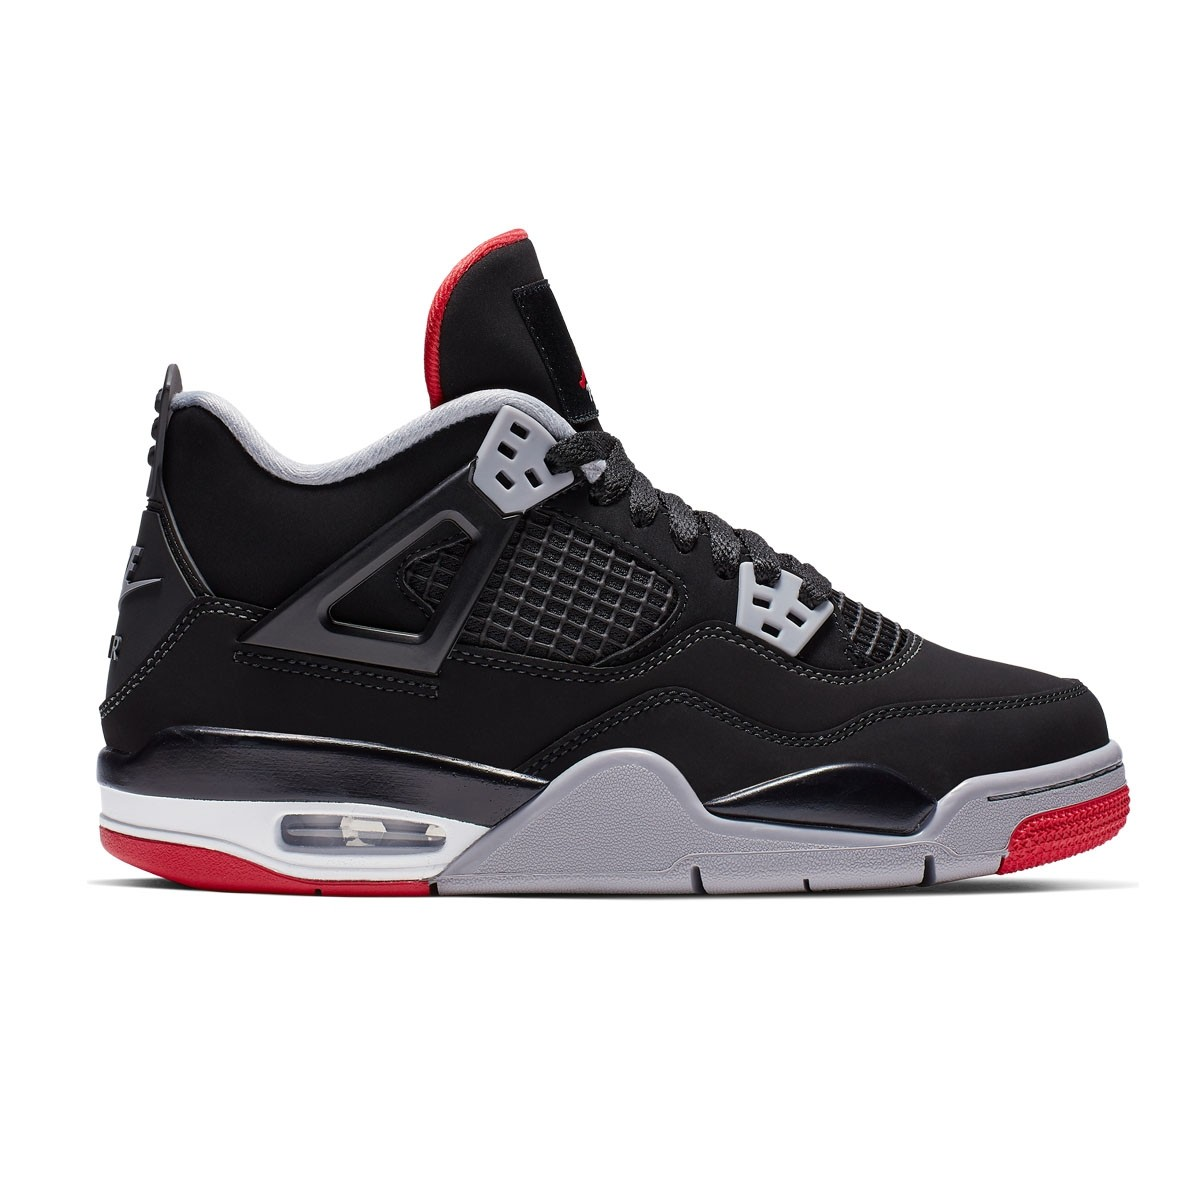 Air Jordan 4 Retro GS 'Bred'